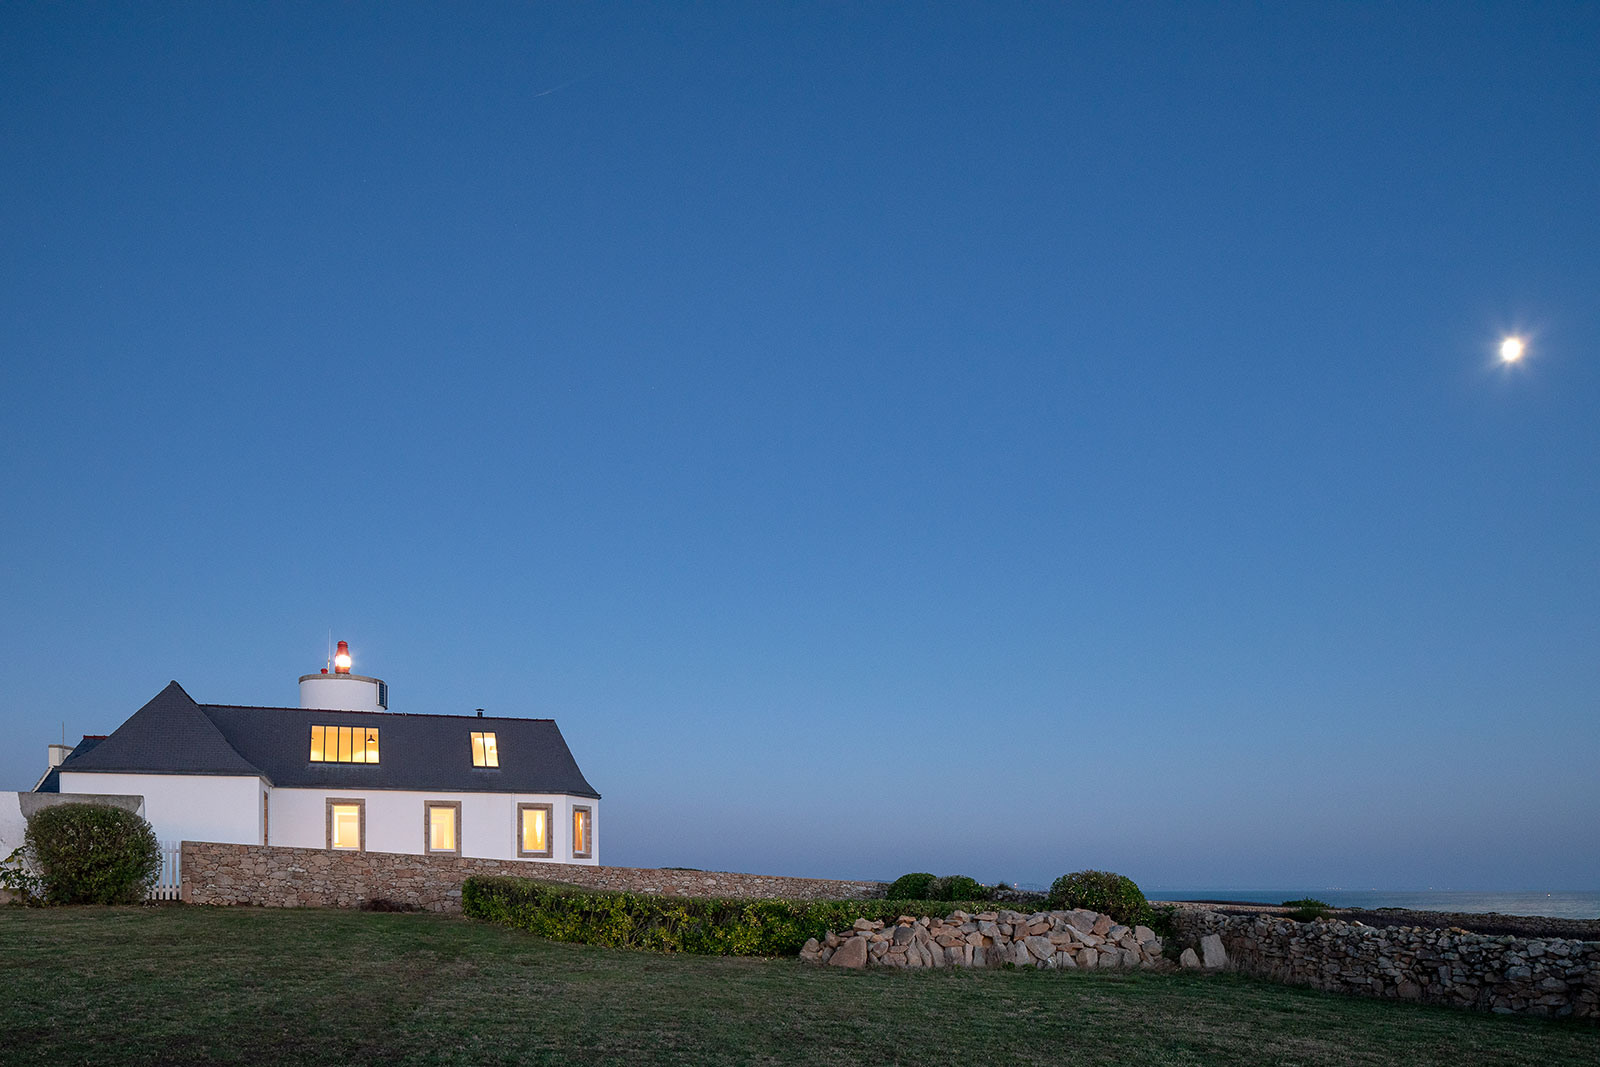 A converted semaphore station and lighthouse perches on the rocky Breton coast